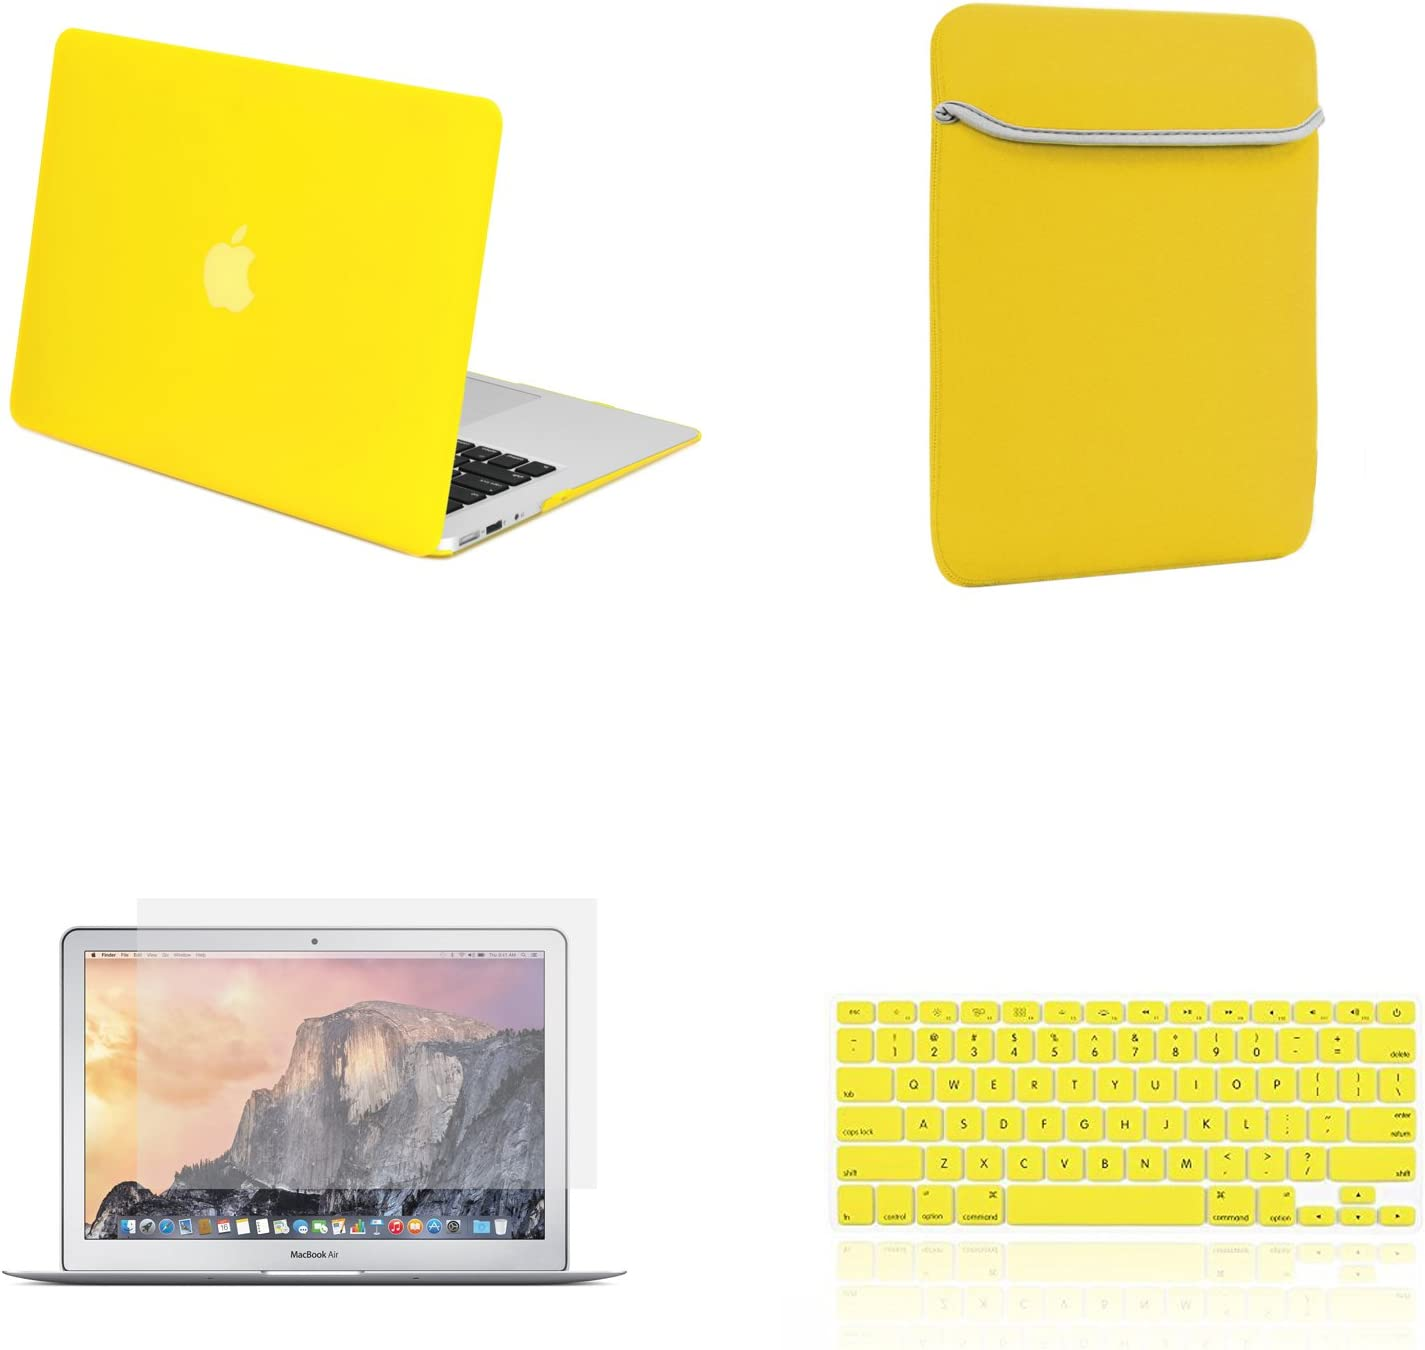 "TOP CASE - 4 in 1 Essential Bundle Rubberized Hard Case, Keyboard Cover, Screen Protector, Sleeve Bag Compatible MacBook Air 13"" Model: A1466 & A1369 (Older Version, Release 2010-2017) - Yellow"